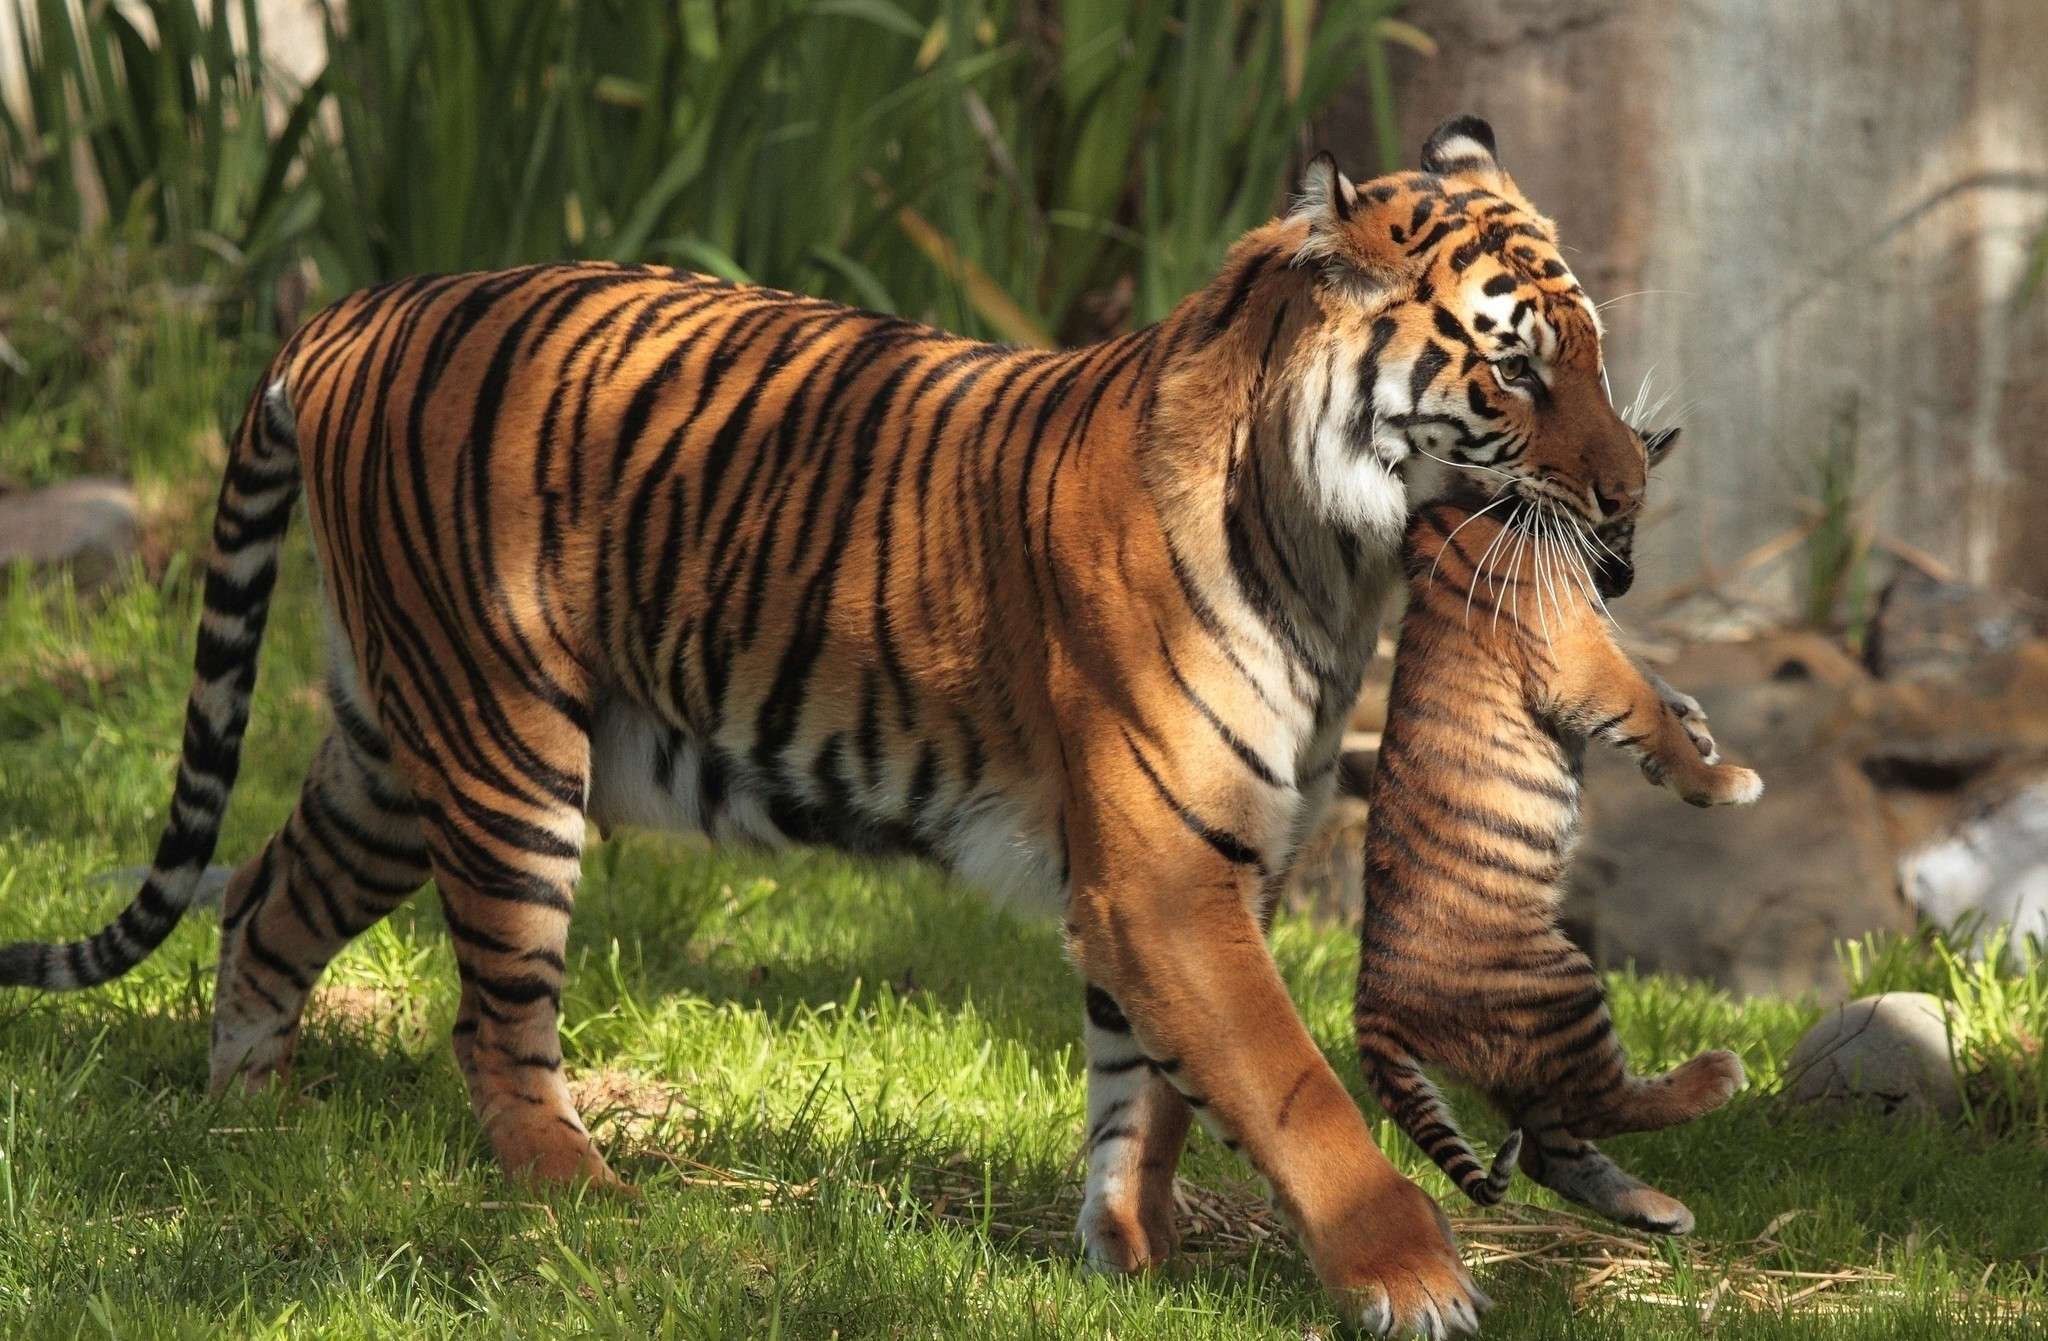 Siberian tiger wallpapers 59 images - Tiger hd wallpaper for pc ...